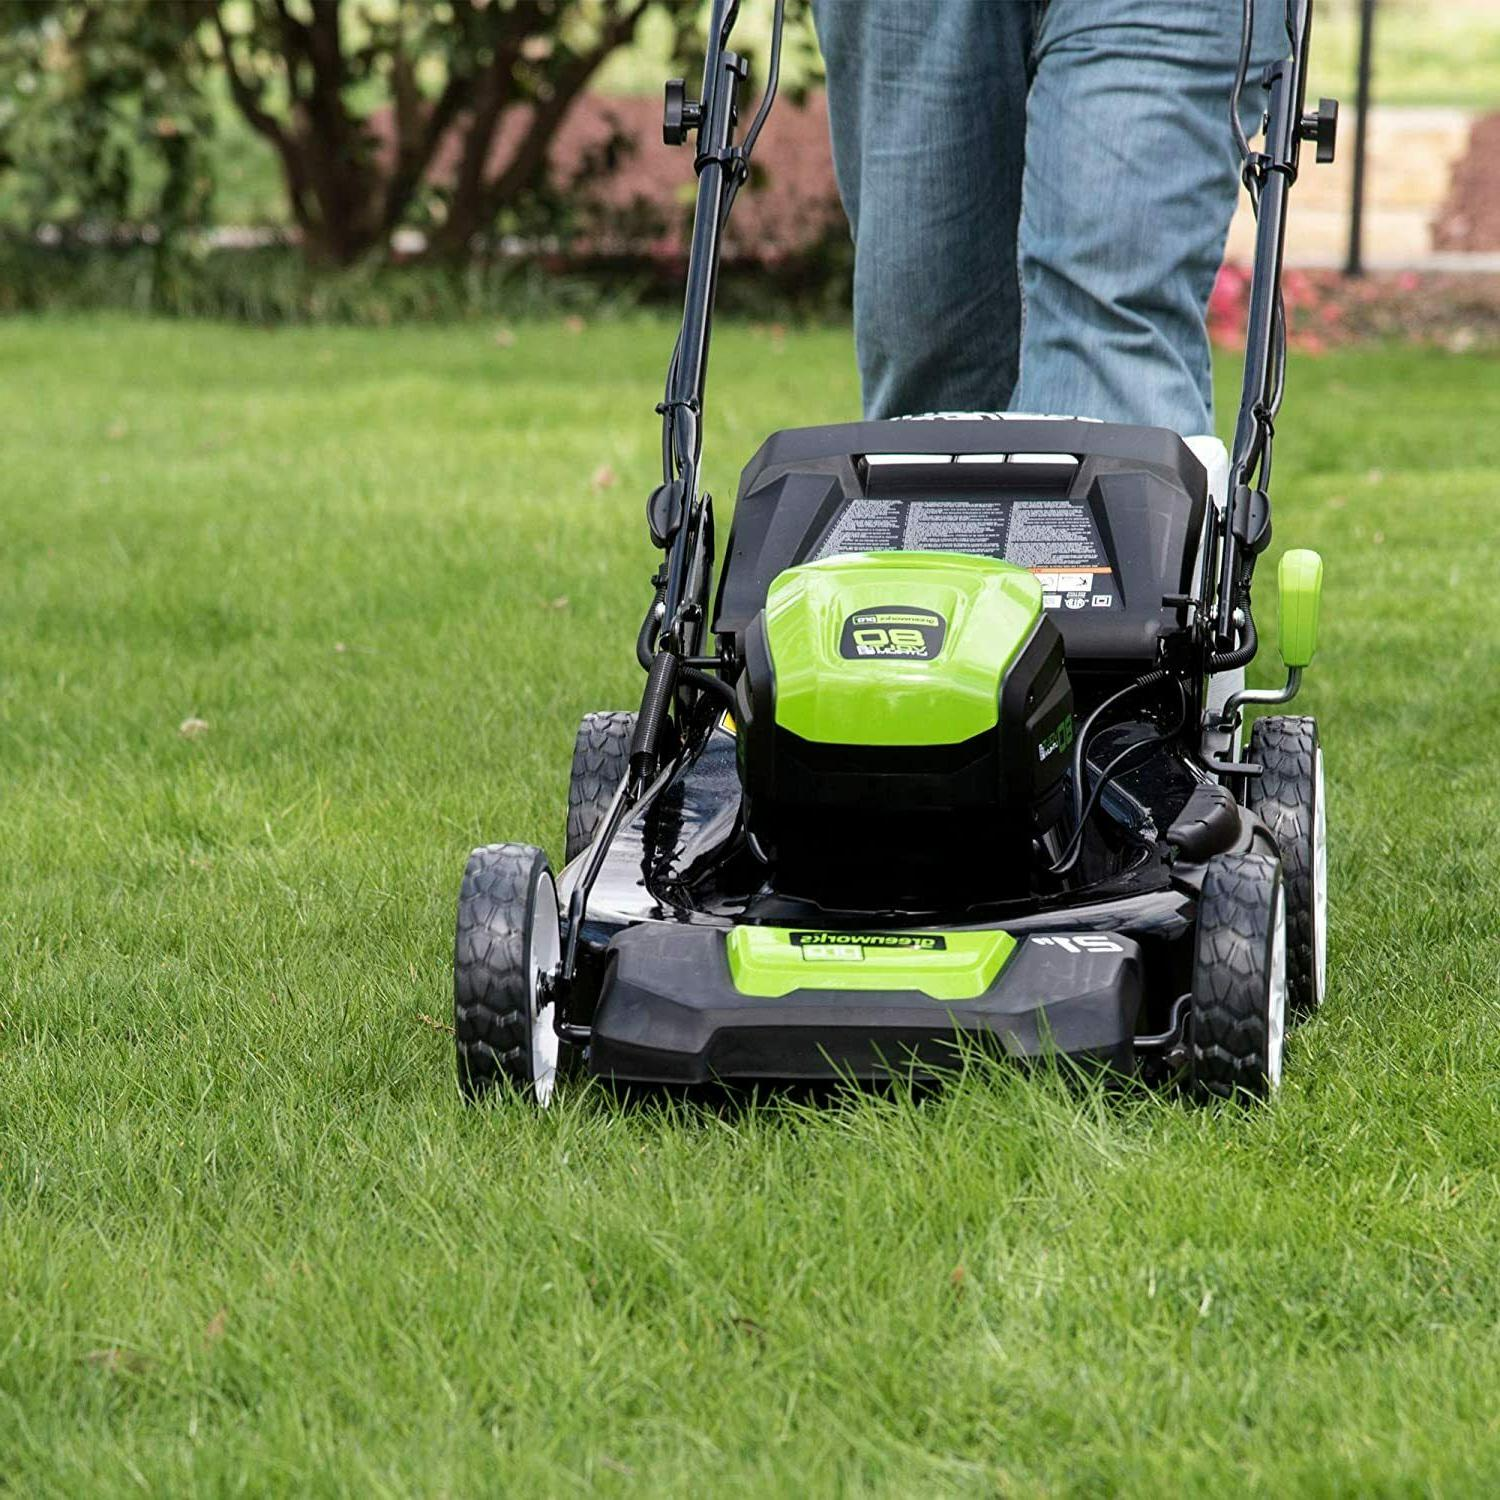 NEW 80V 21 in. Cordless Lawn Mower